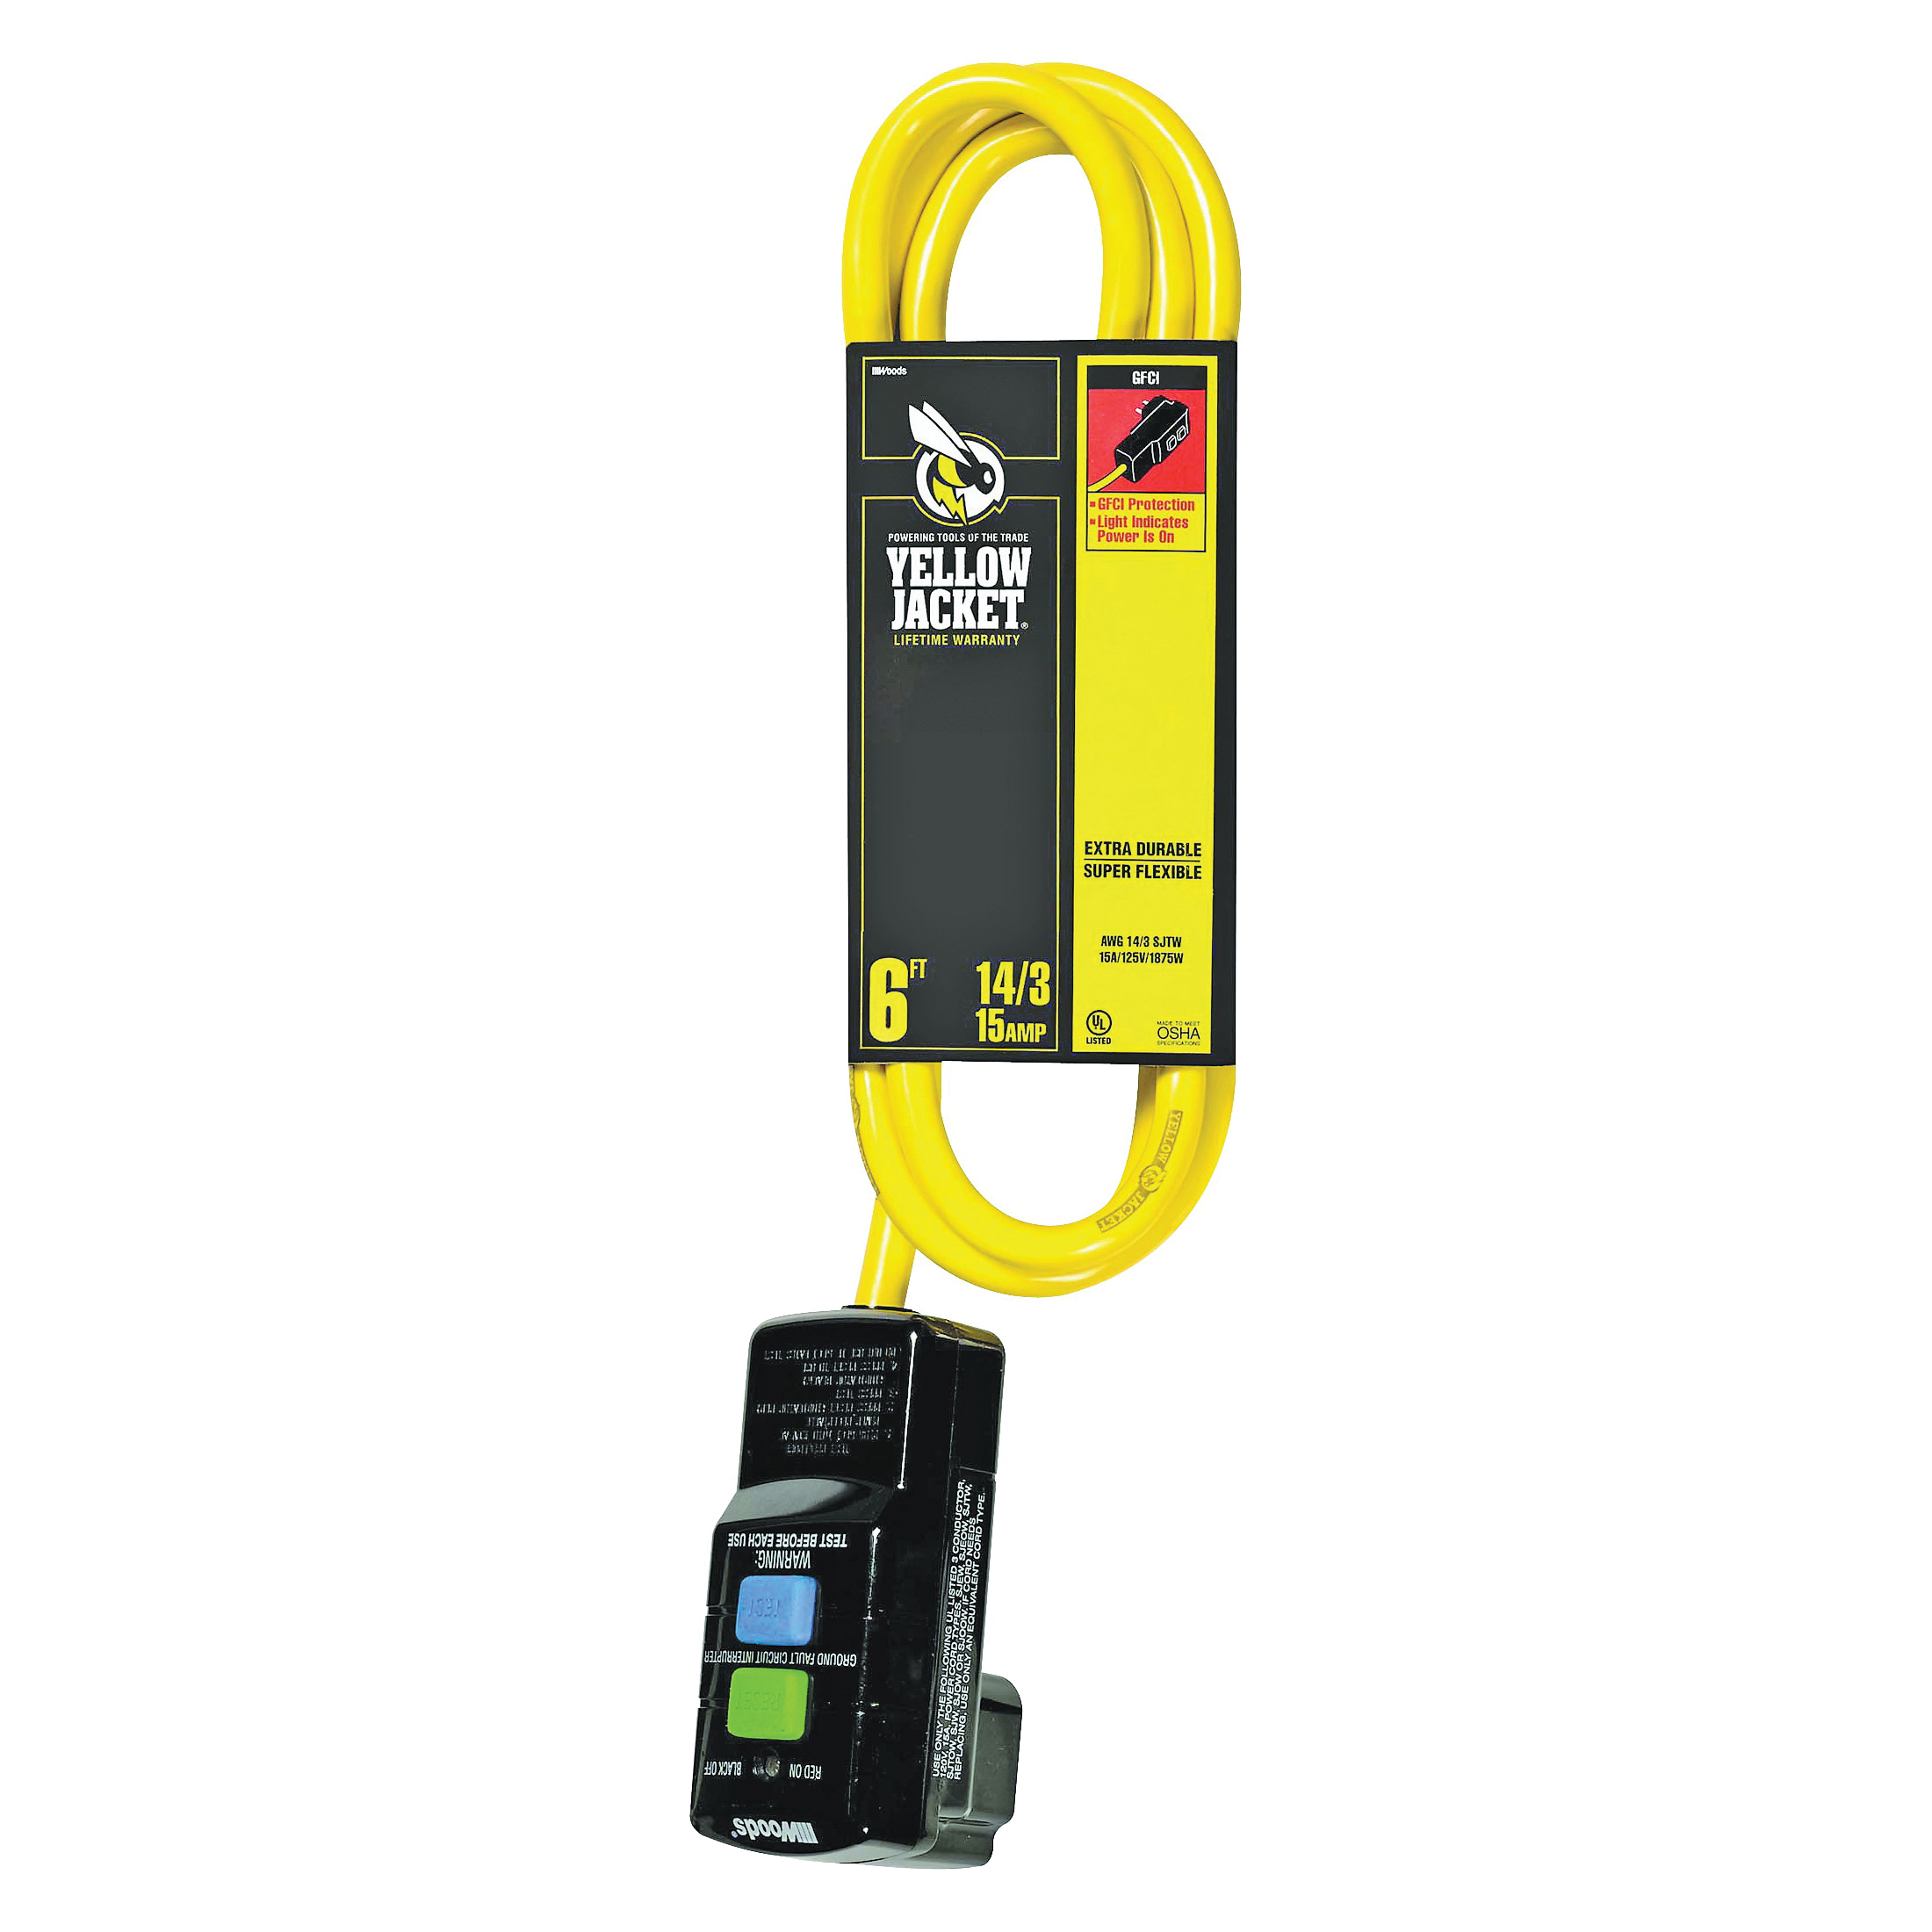 Picture of CCI 2879 Extension Cord, 6 ft L Cable, 15 A, 125 V, Yellow Jacket